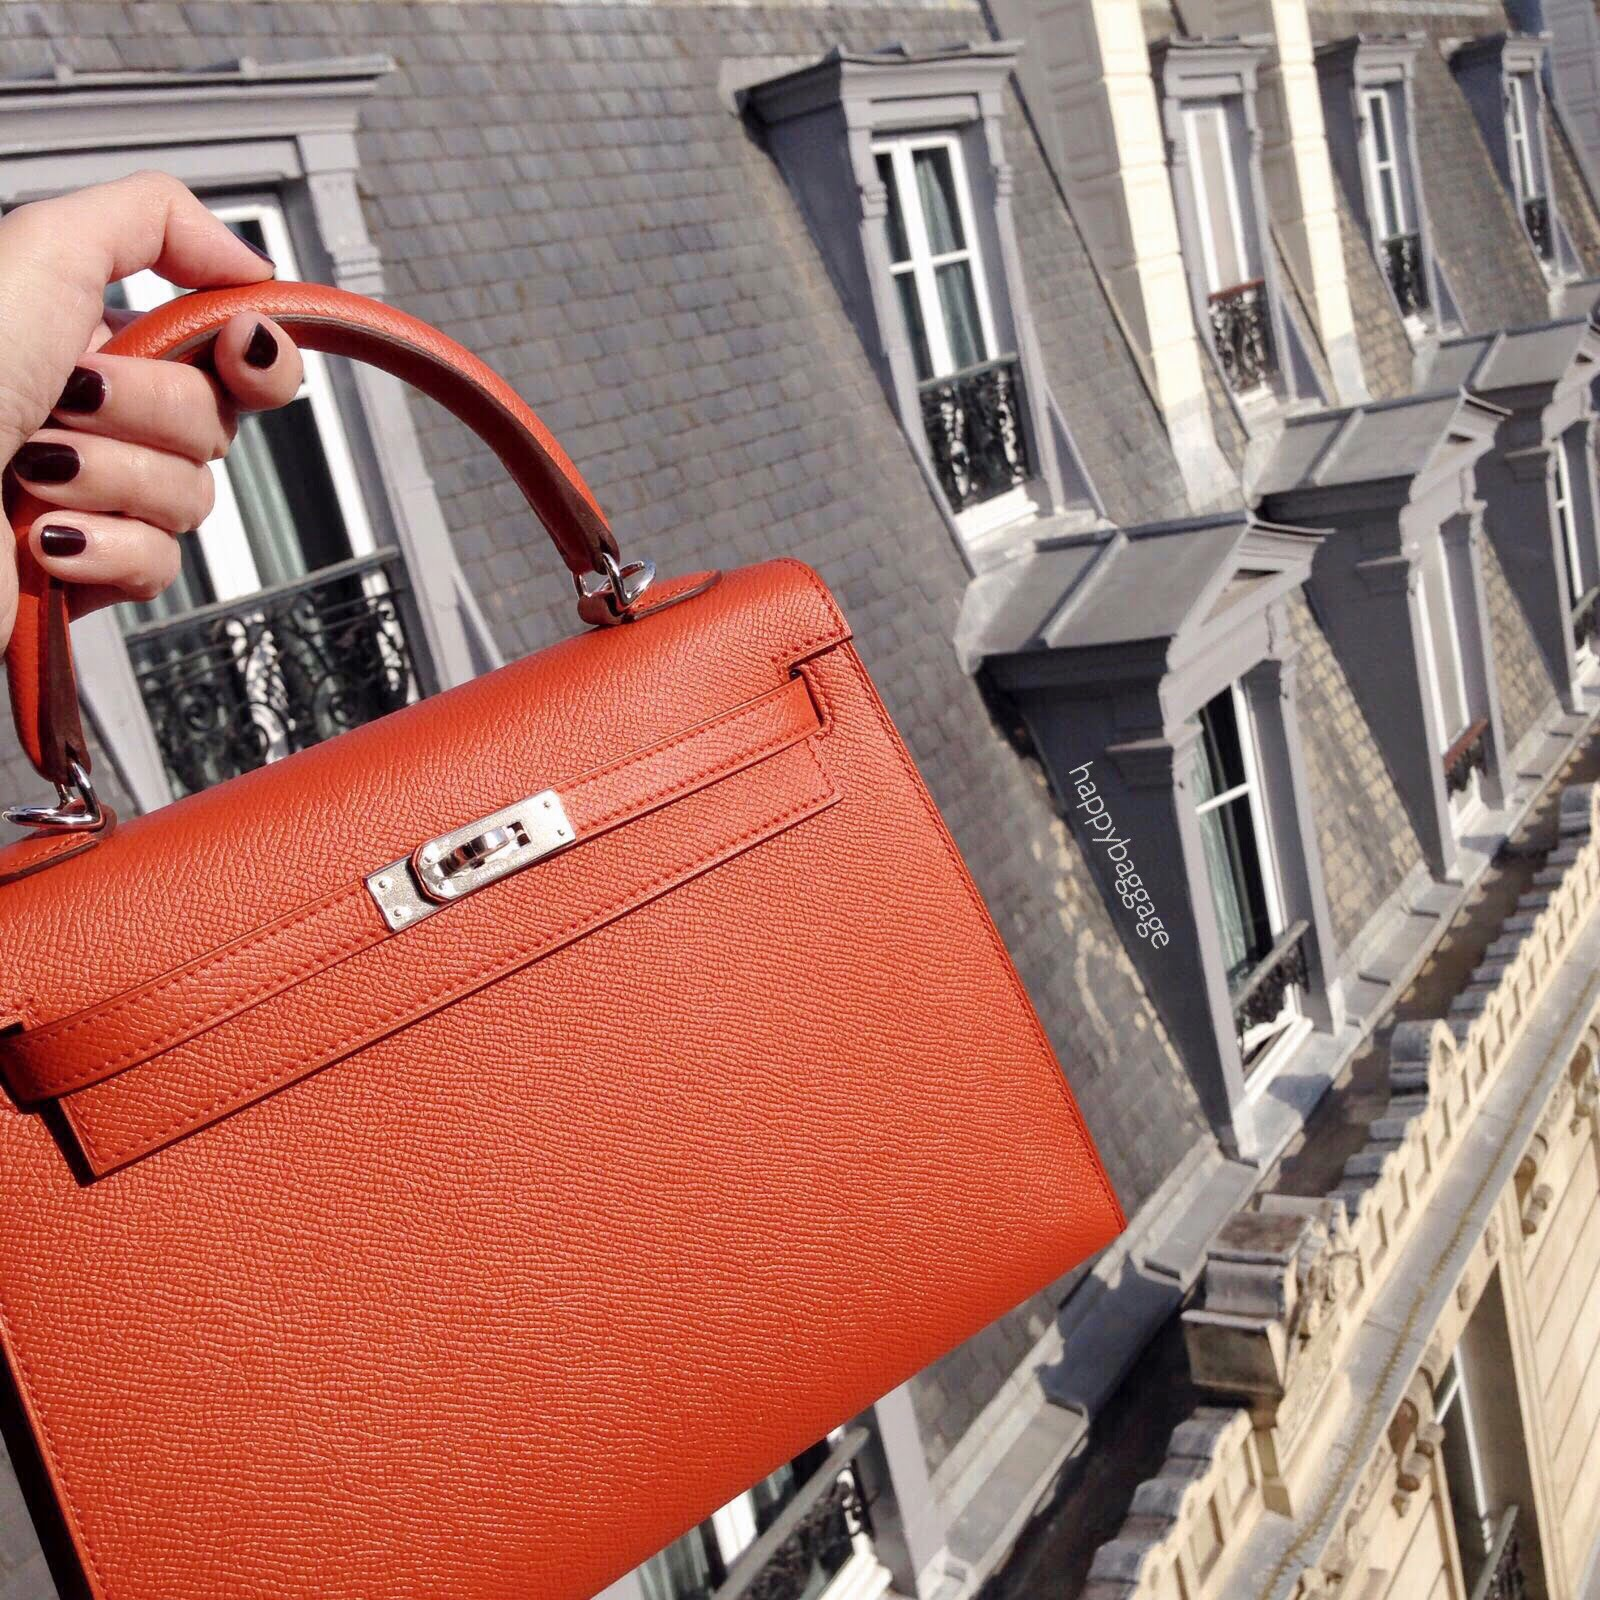 9f4fad103026 ... for my favorite Hermes orange until I was offered a Terre Battue  (meaning  clay  in French) Kelly 25 sellier. I finally discovered that this  new shade ...